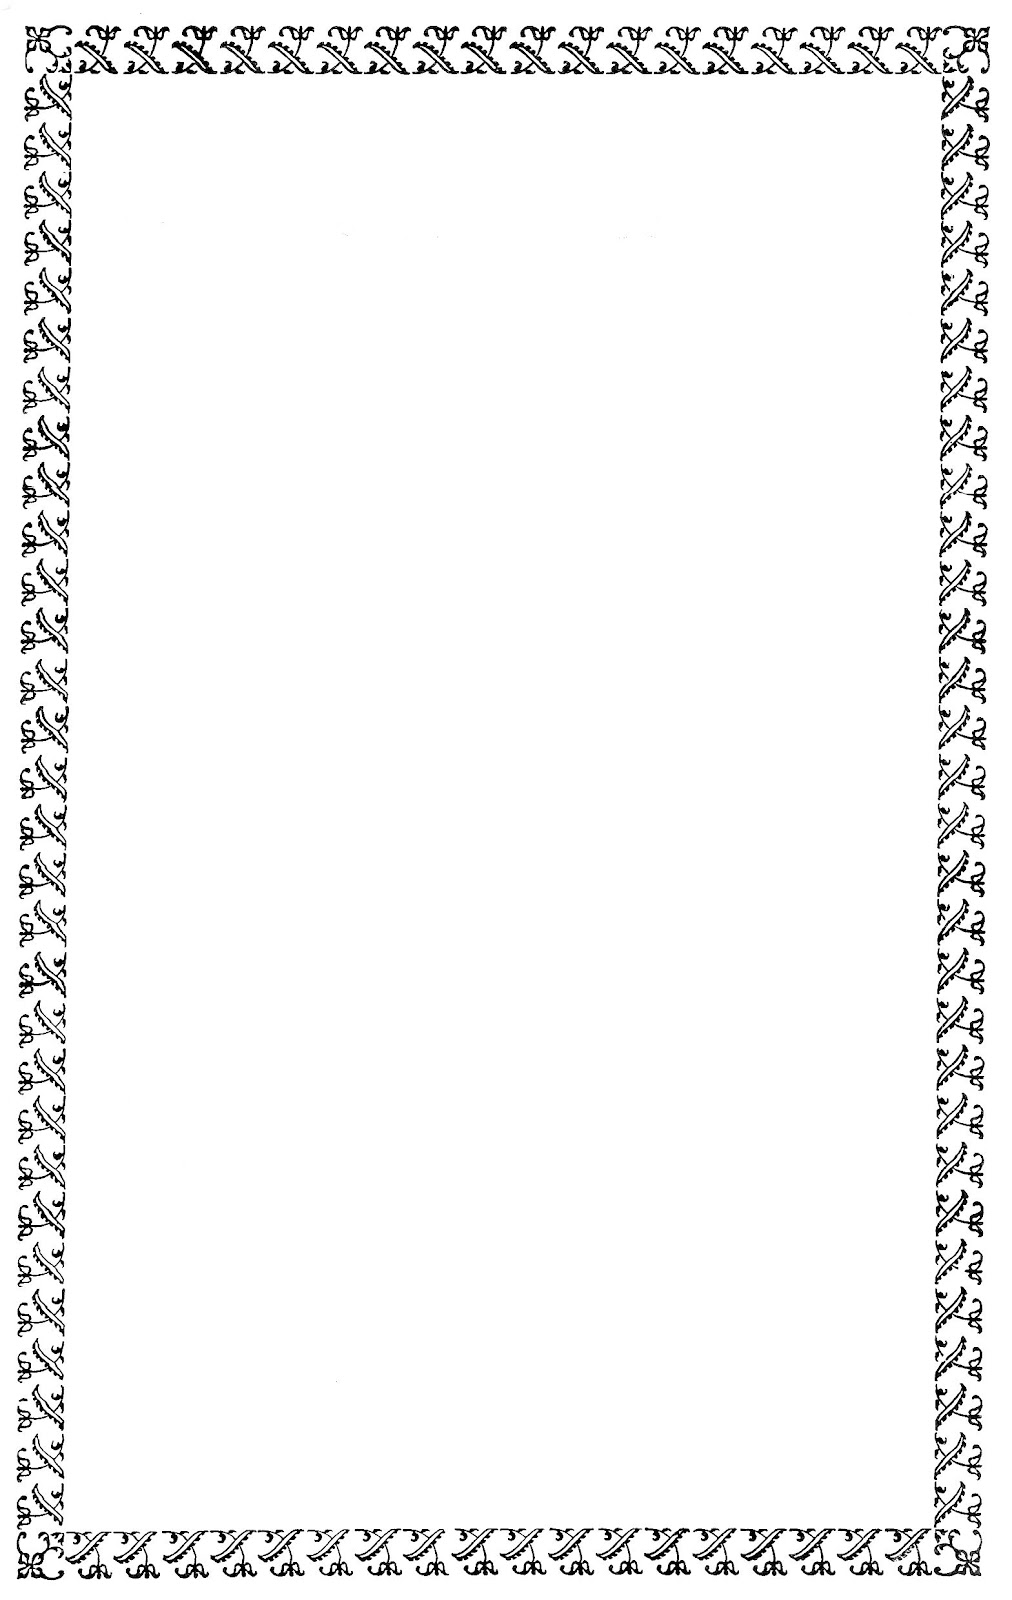 Free Digital Frame: Black Decorative Border Clip Art